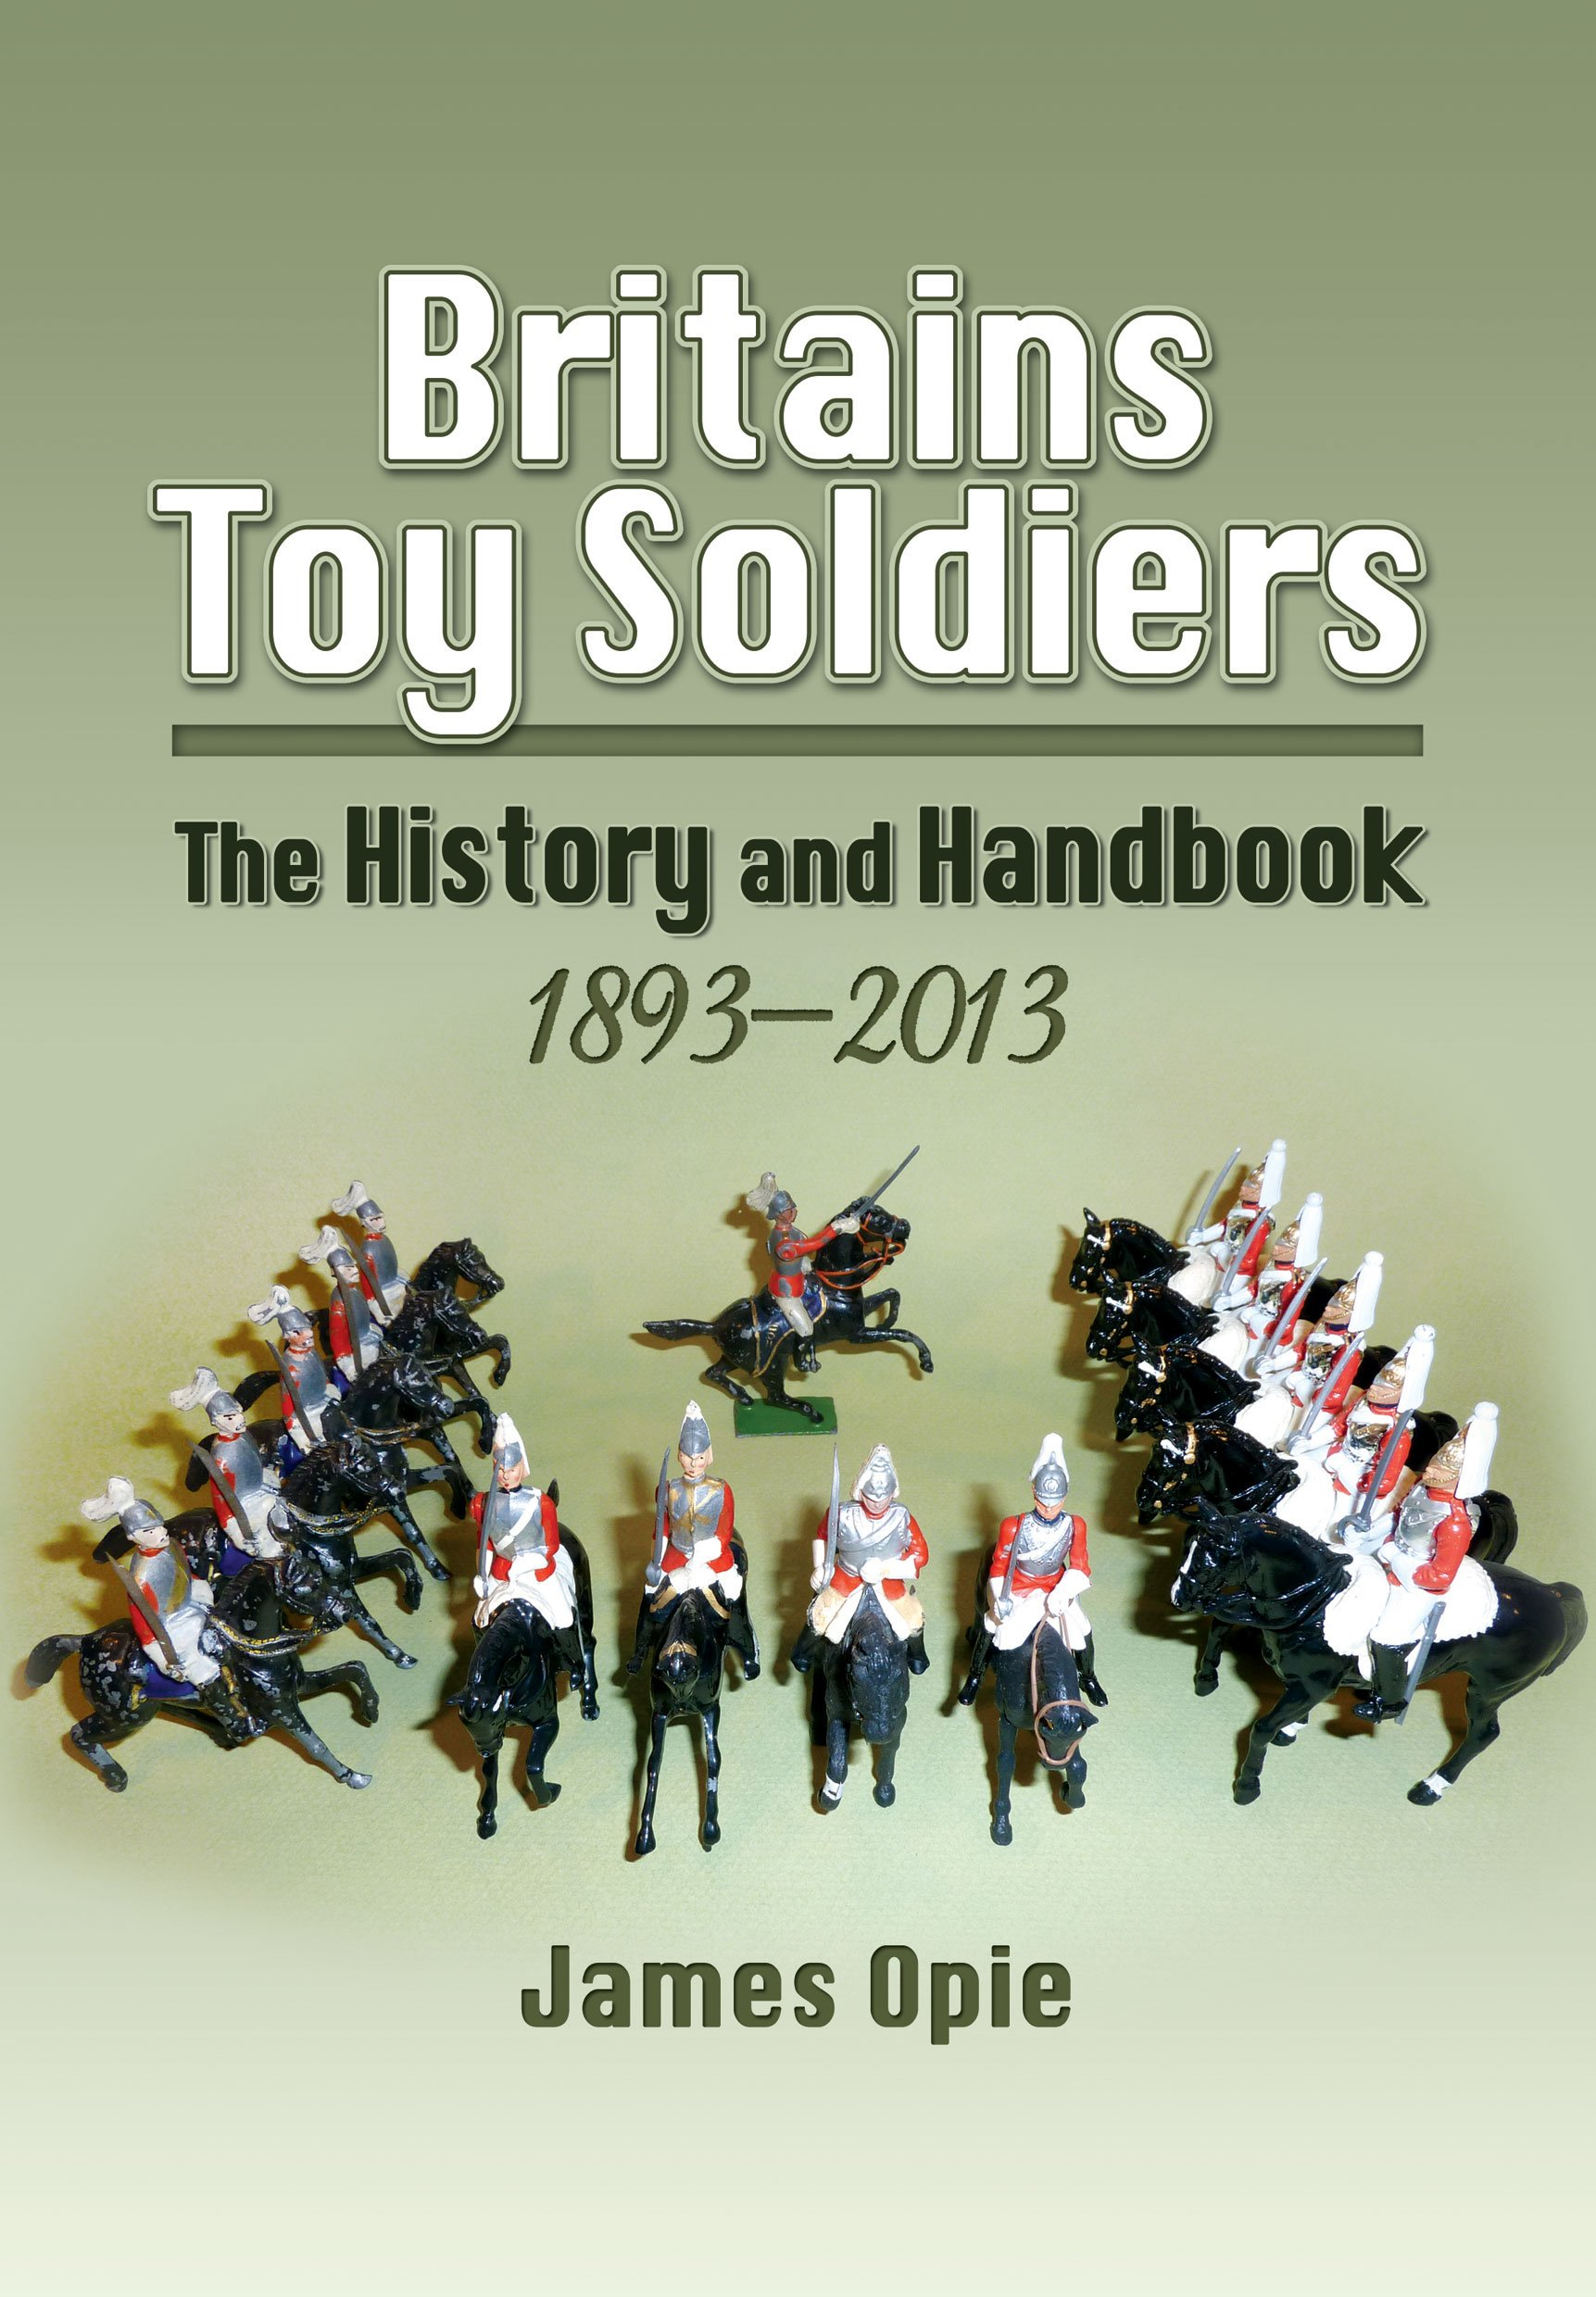 Britains Toy Soldiers: The History and Handbook 1893-2013 pdf